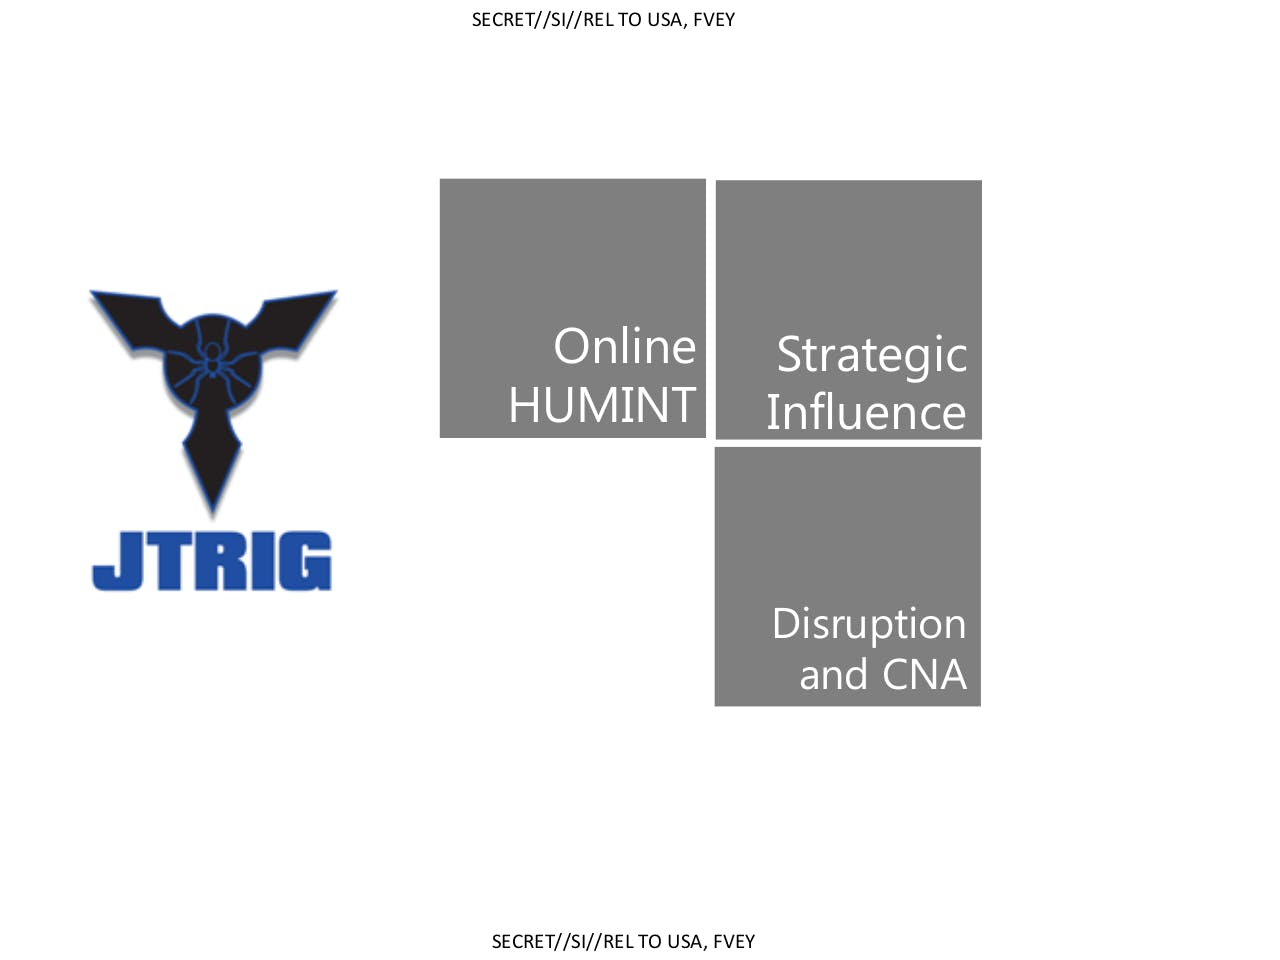 under the title online covert action the document details a variety of means to engage in influence and info ops as well as disruption and computer